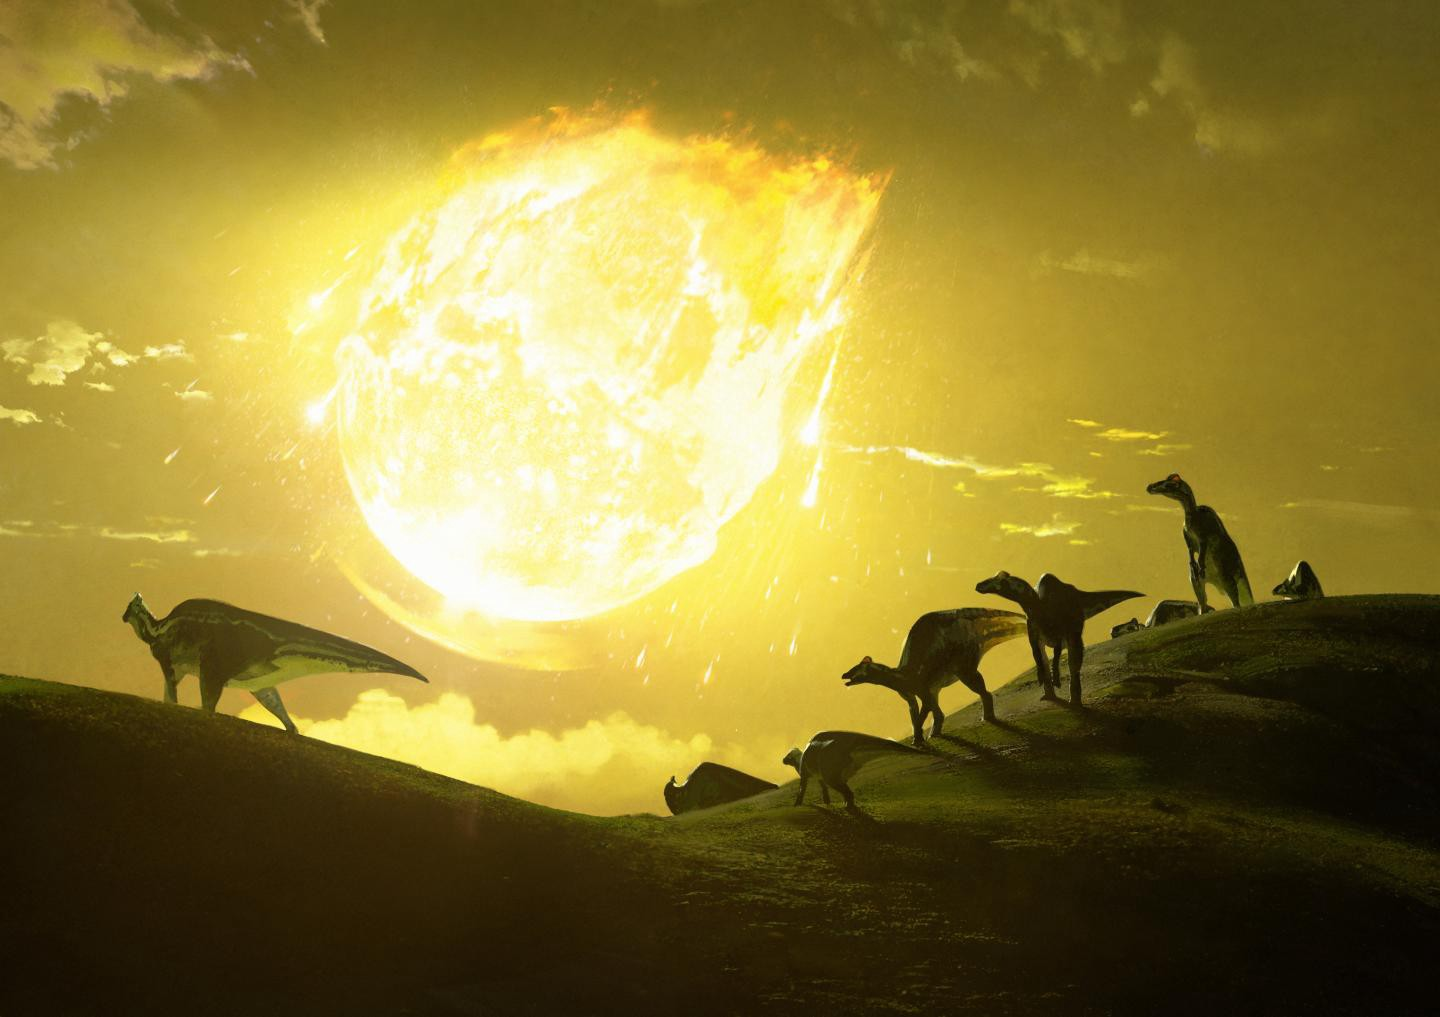 Dinosaurs watch as a massive asteroid burns up on its way to a fateful impact with Earth.